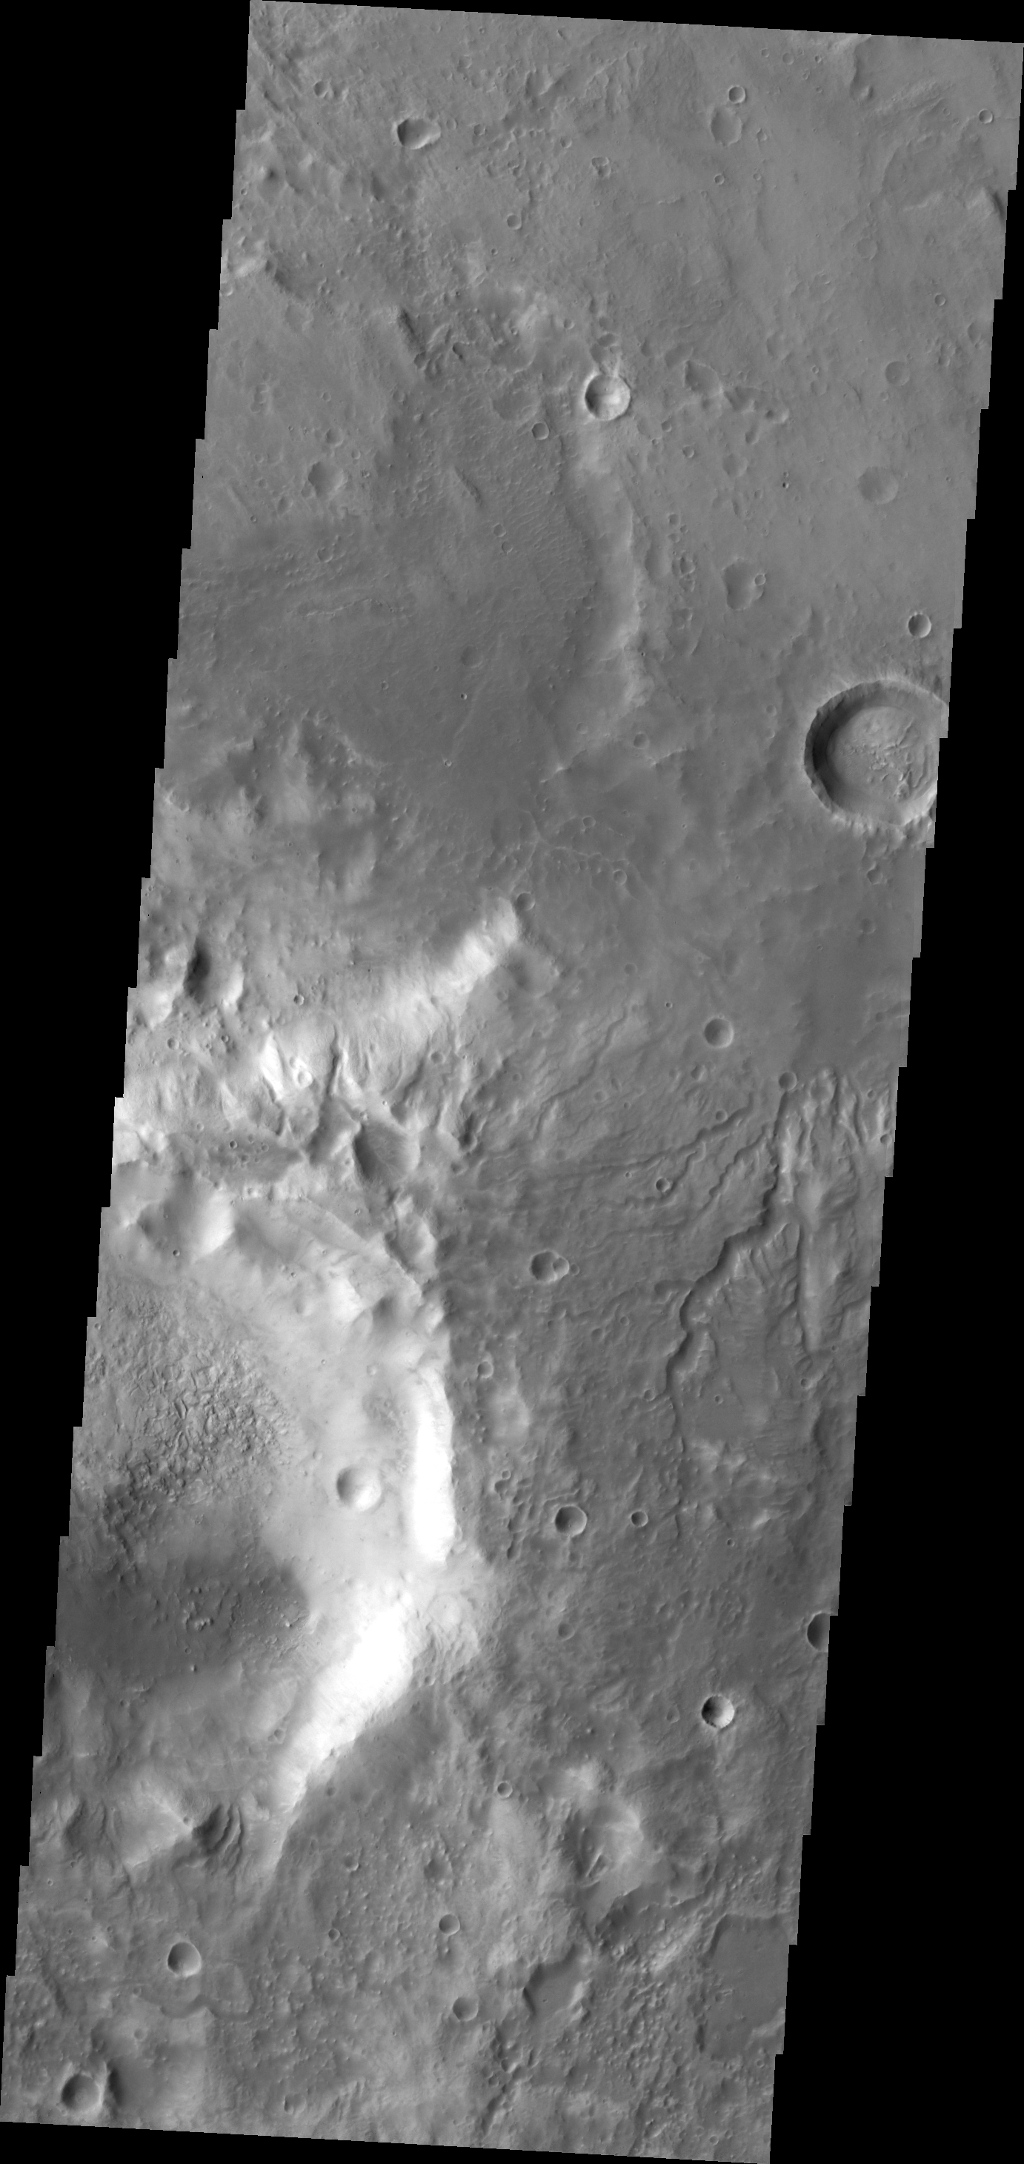 The small channels in this image captured by NASA's Mars Odyssey spacecraft dissect the southern rim of Sklodowska Crater on Mars.